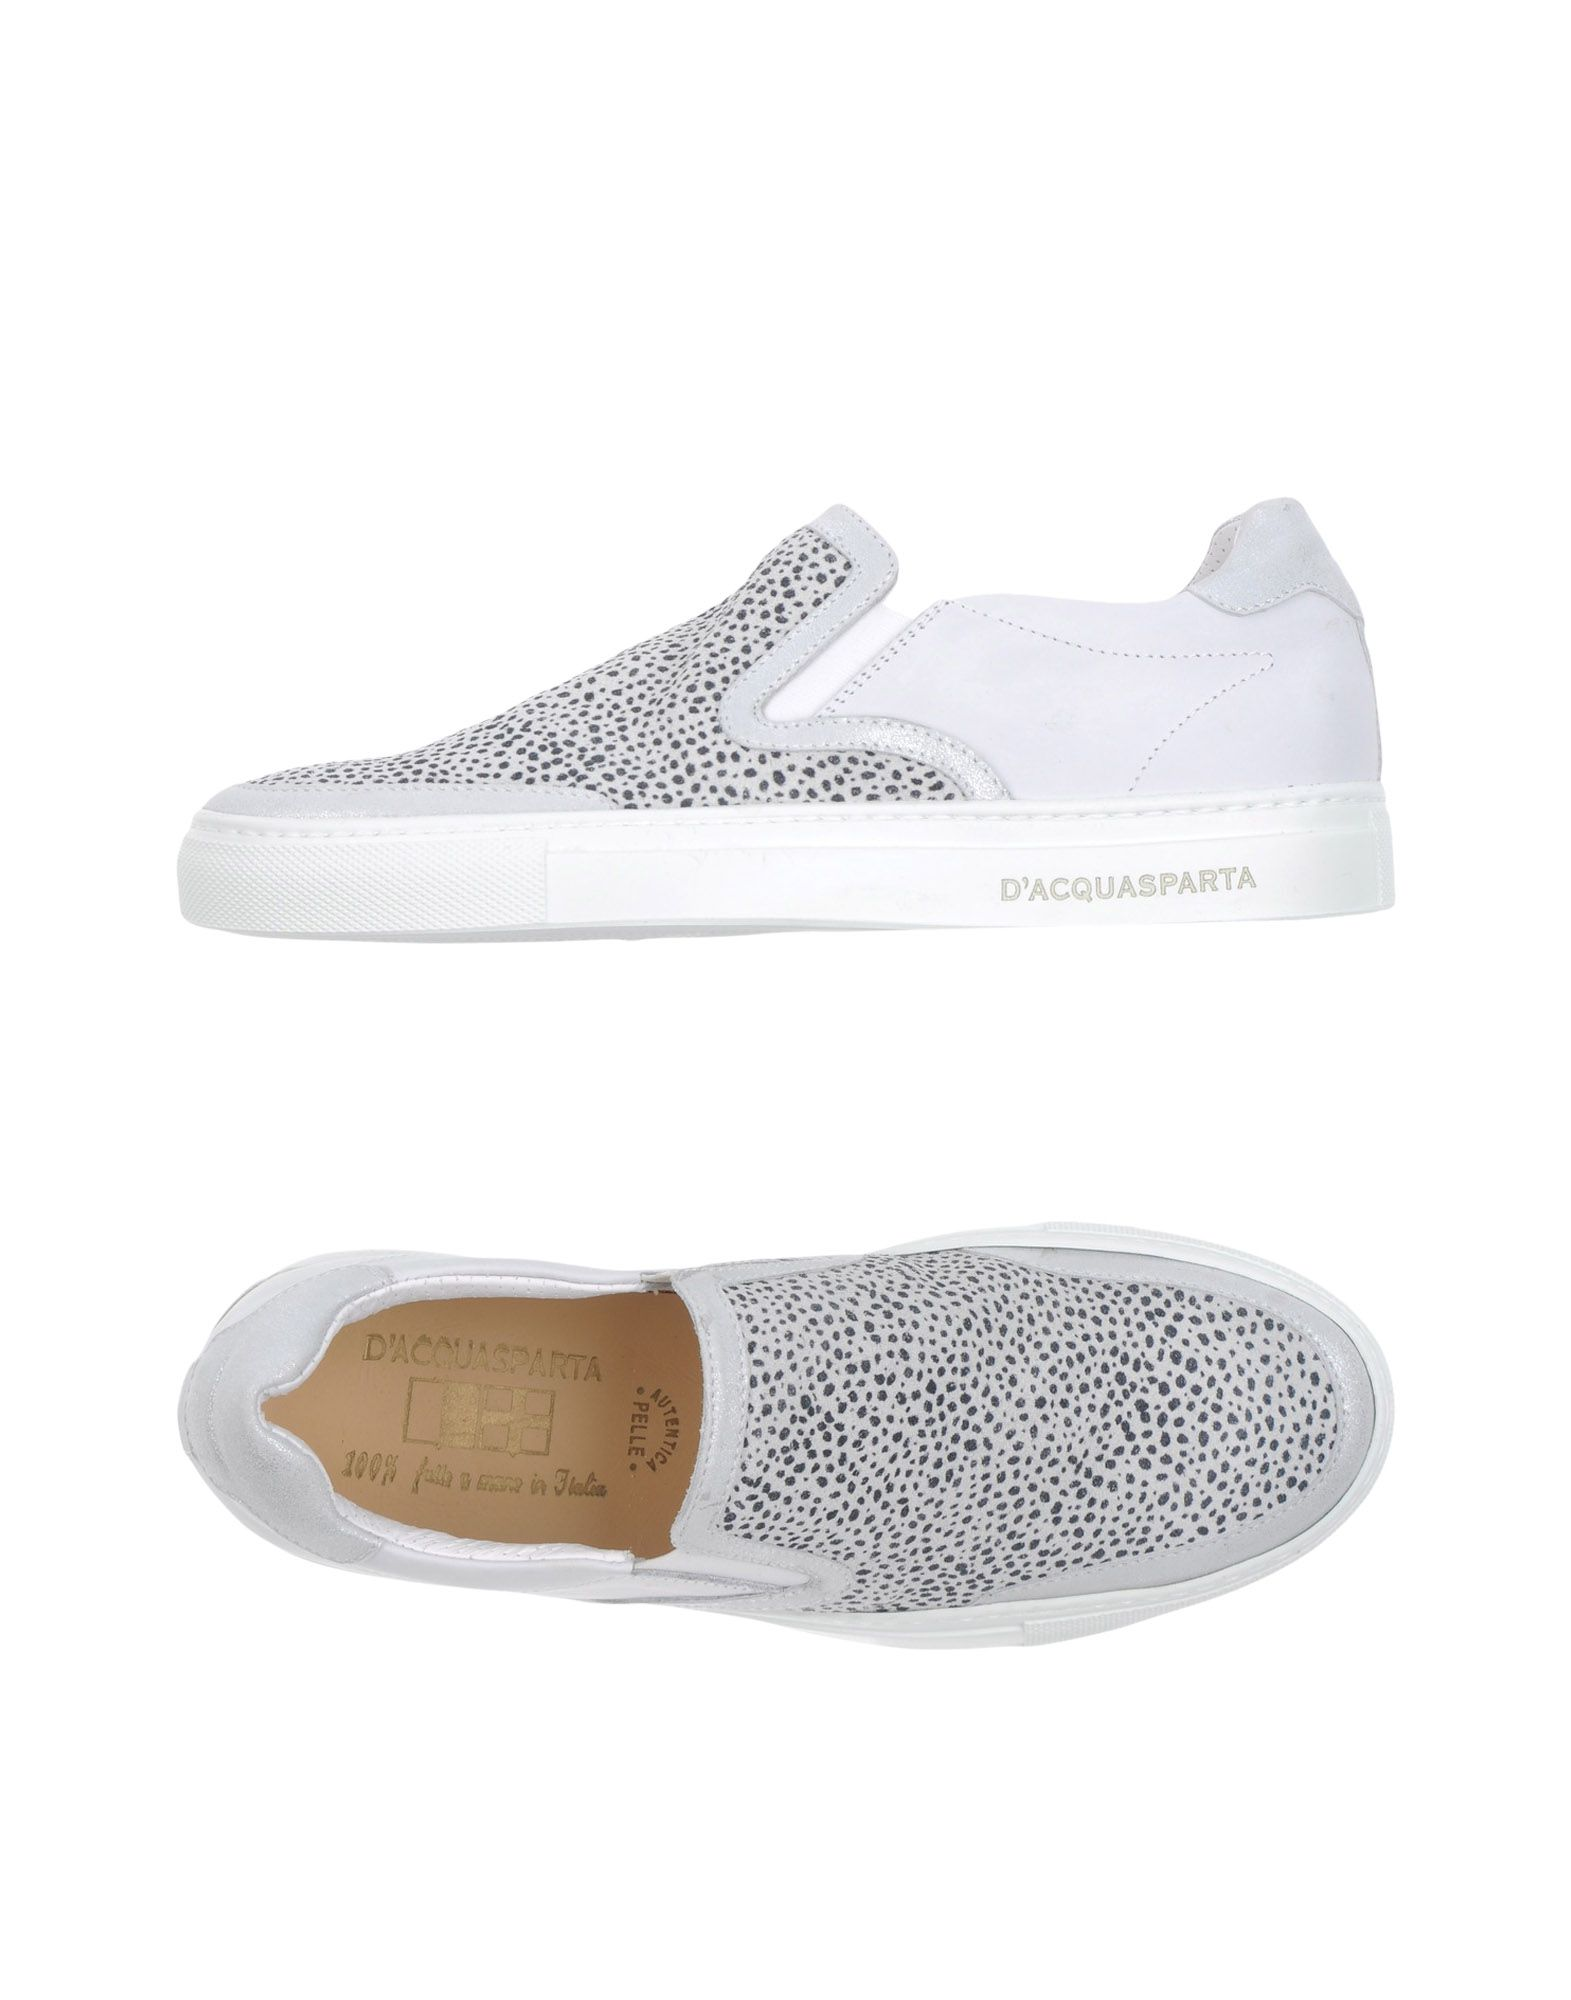 D'Acquasparta on Sneakers - Women D'Acquasparta Sneakers online on D'Acquasparta  Canada - 11171782QD 6e7652